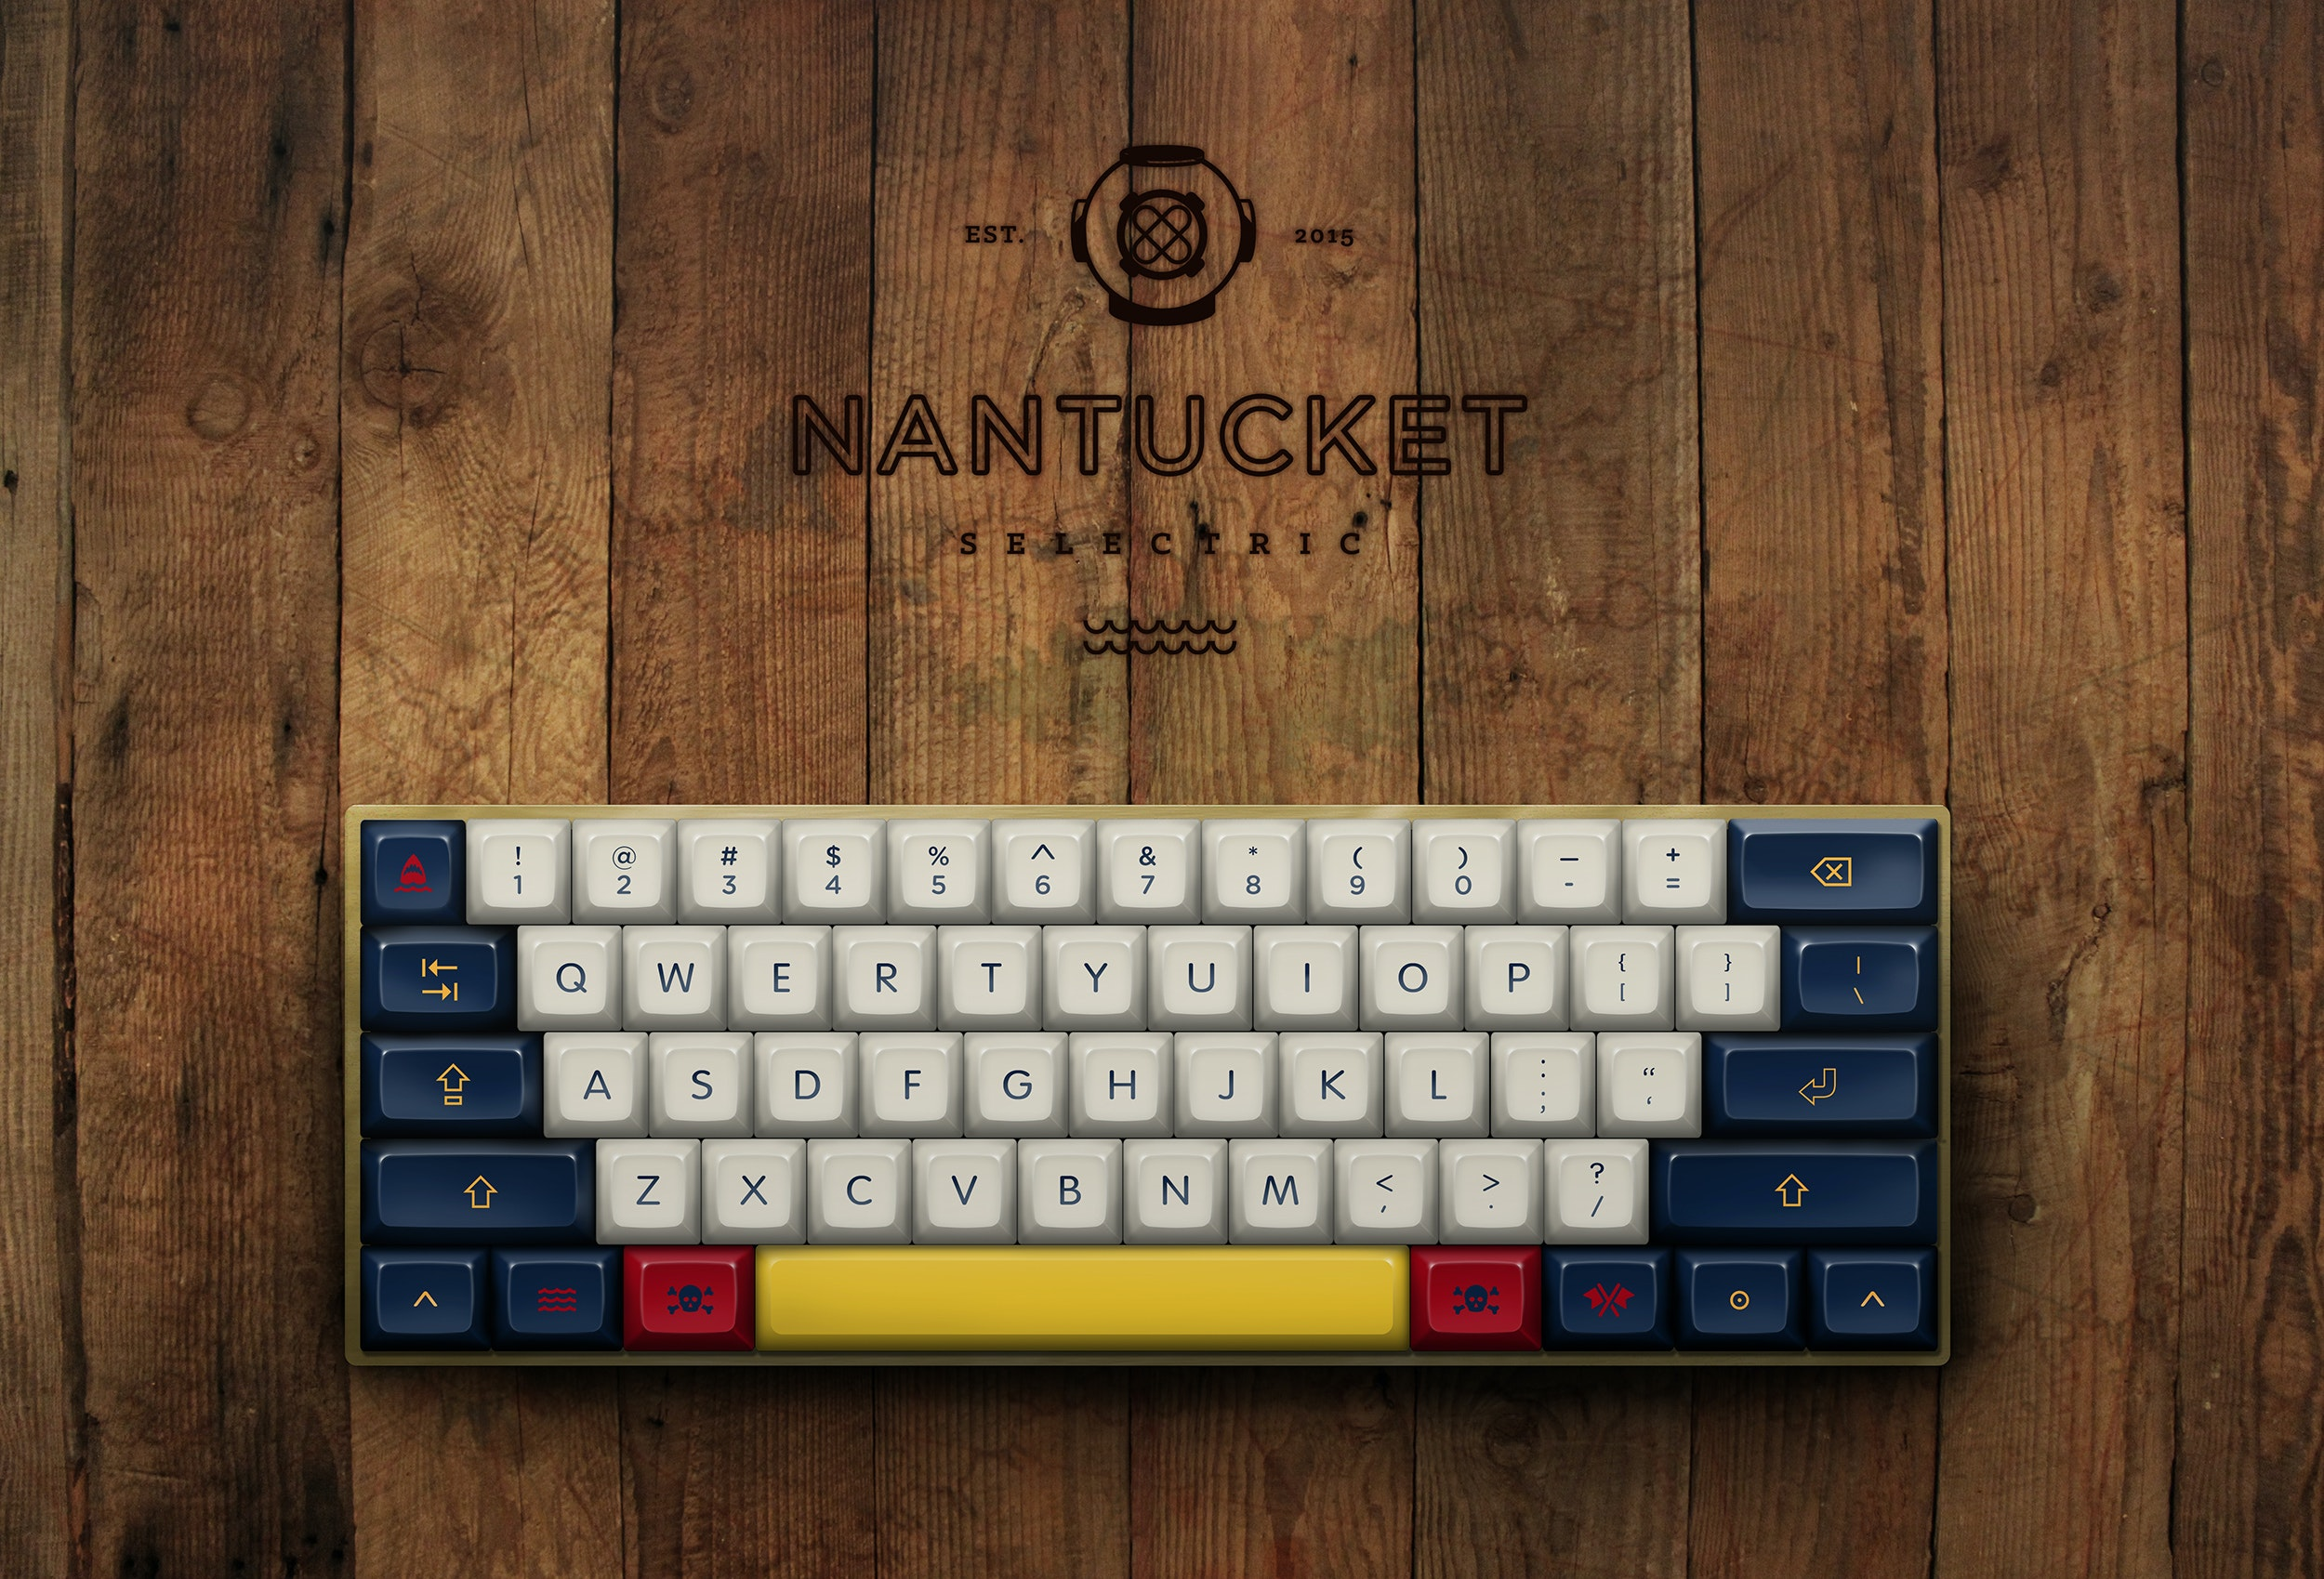 Nantucket Selectric SA 1-1-2-3-4-4